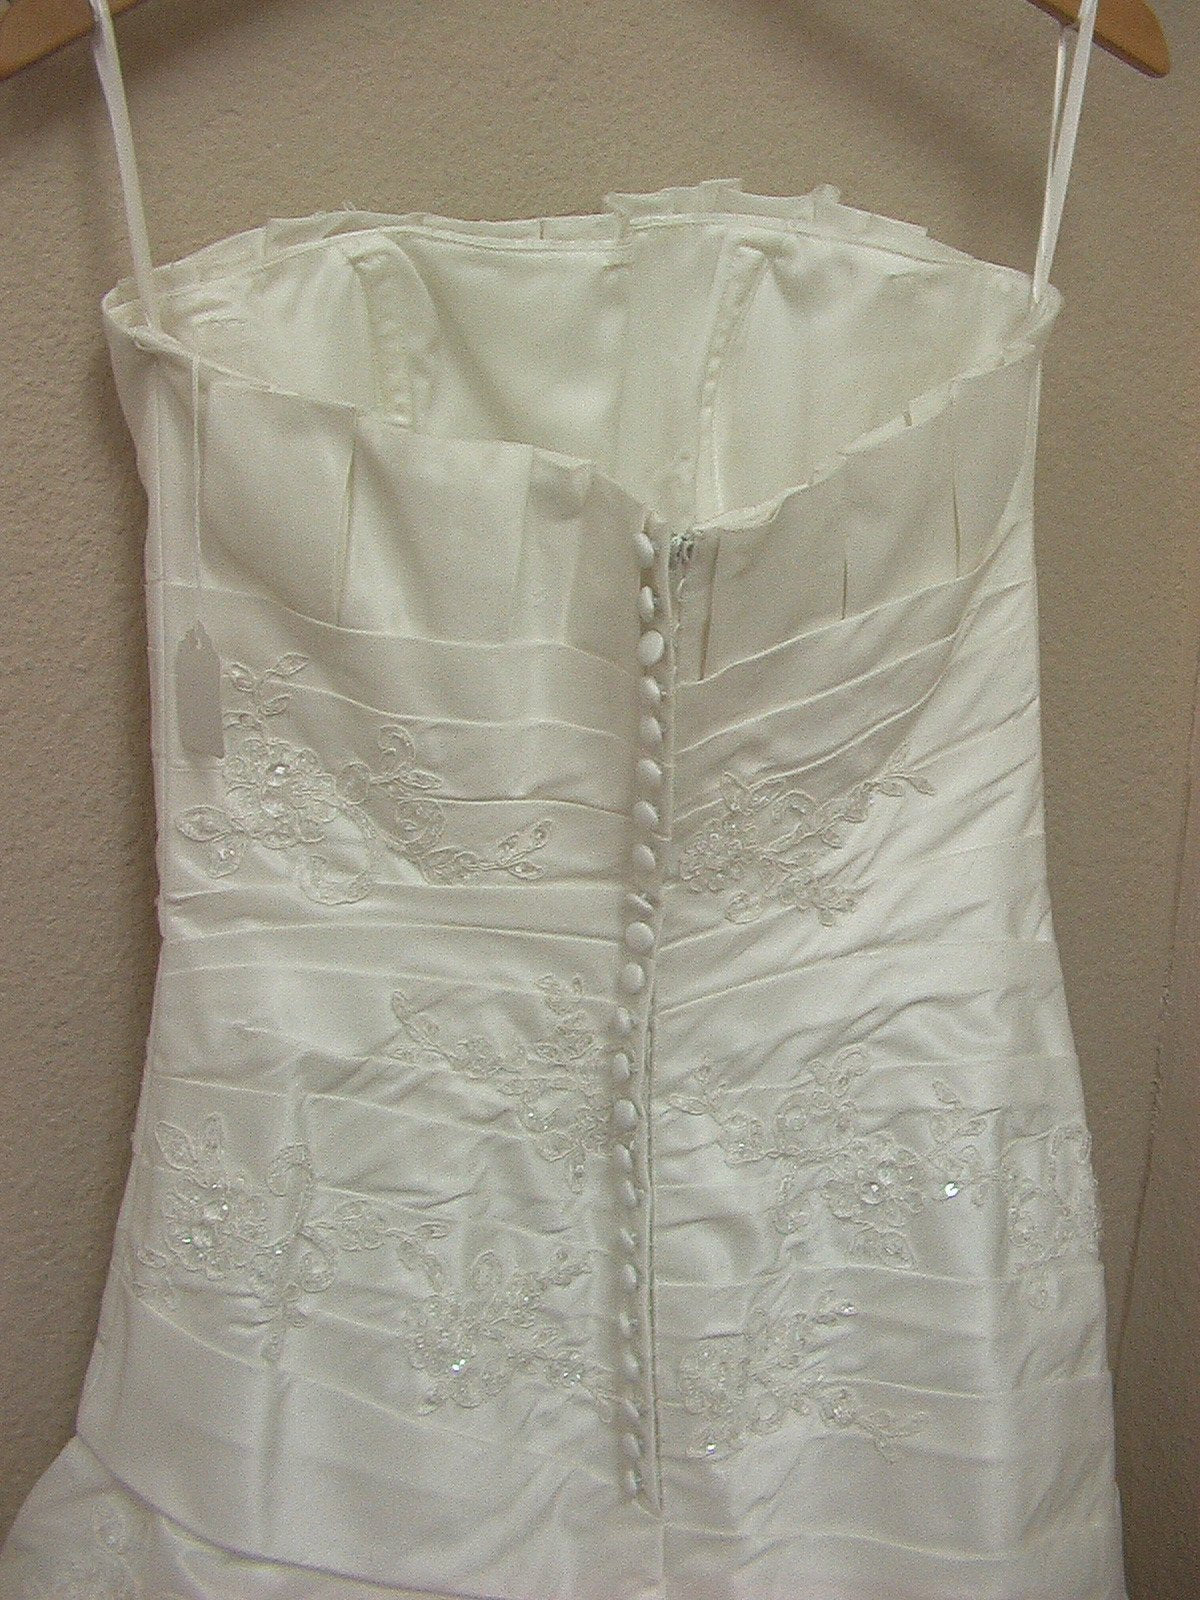 White One 6232 by Pronovias Off White size 8 In Stock Wedding Dress - Tom's Bridal